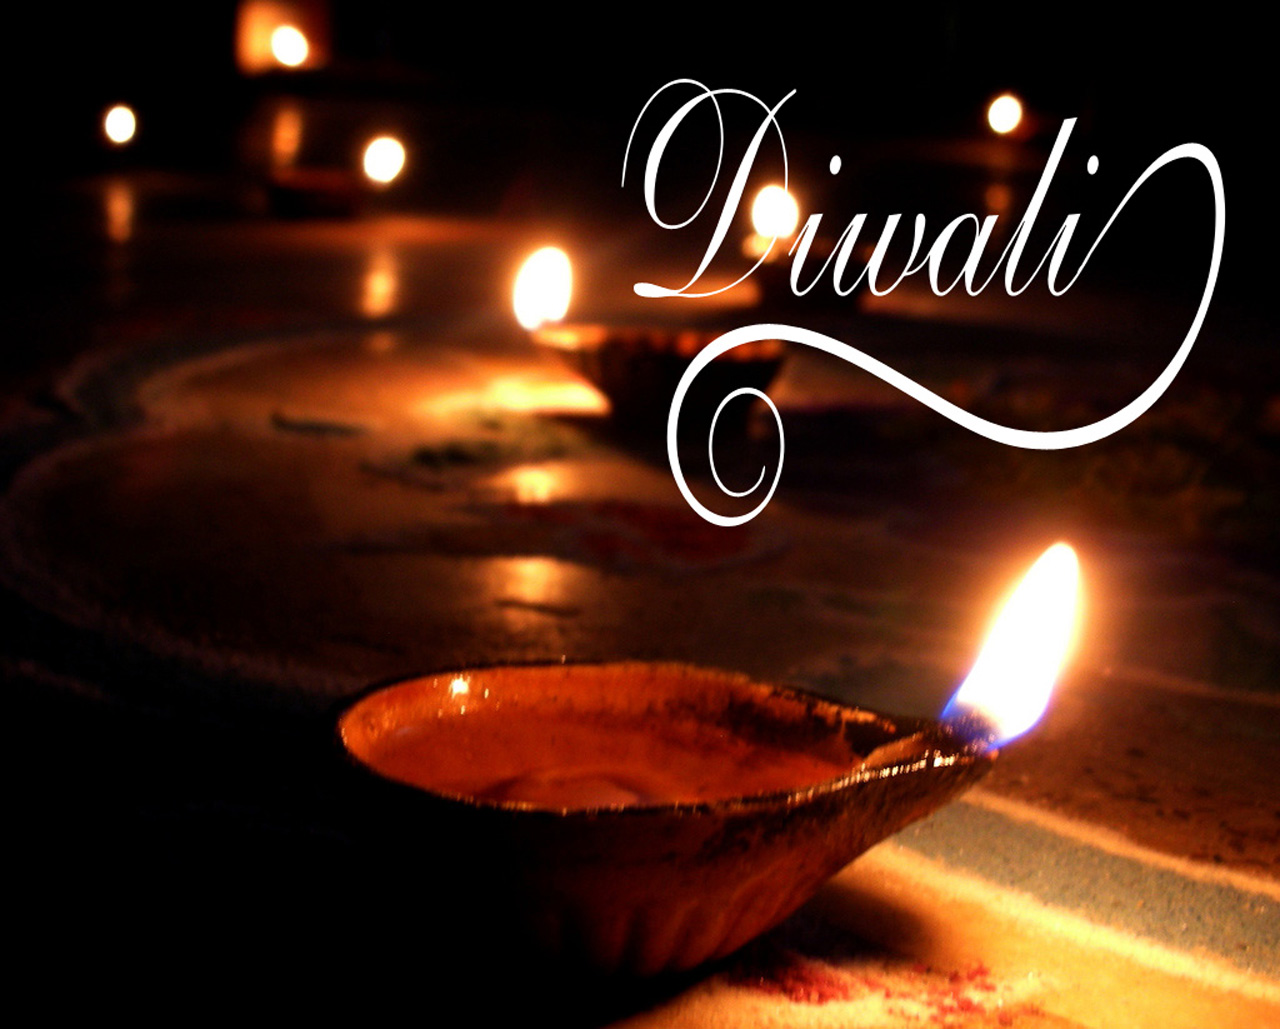 Diwali greetings most beautiful places in kerala diwali greetings kristyandbryce Gallery